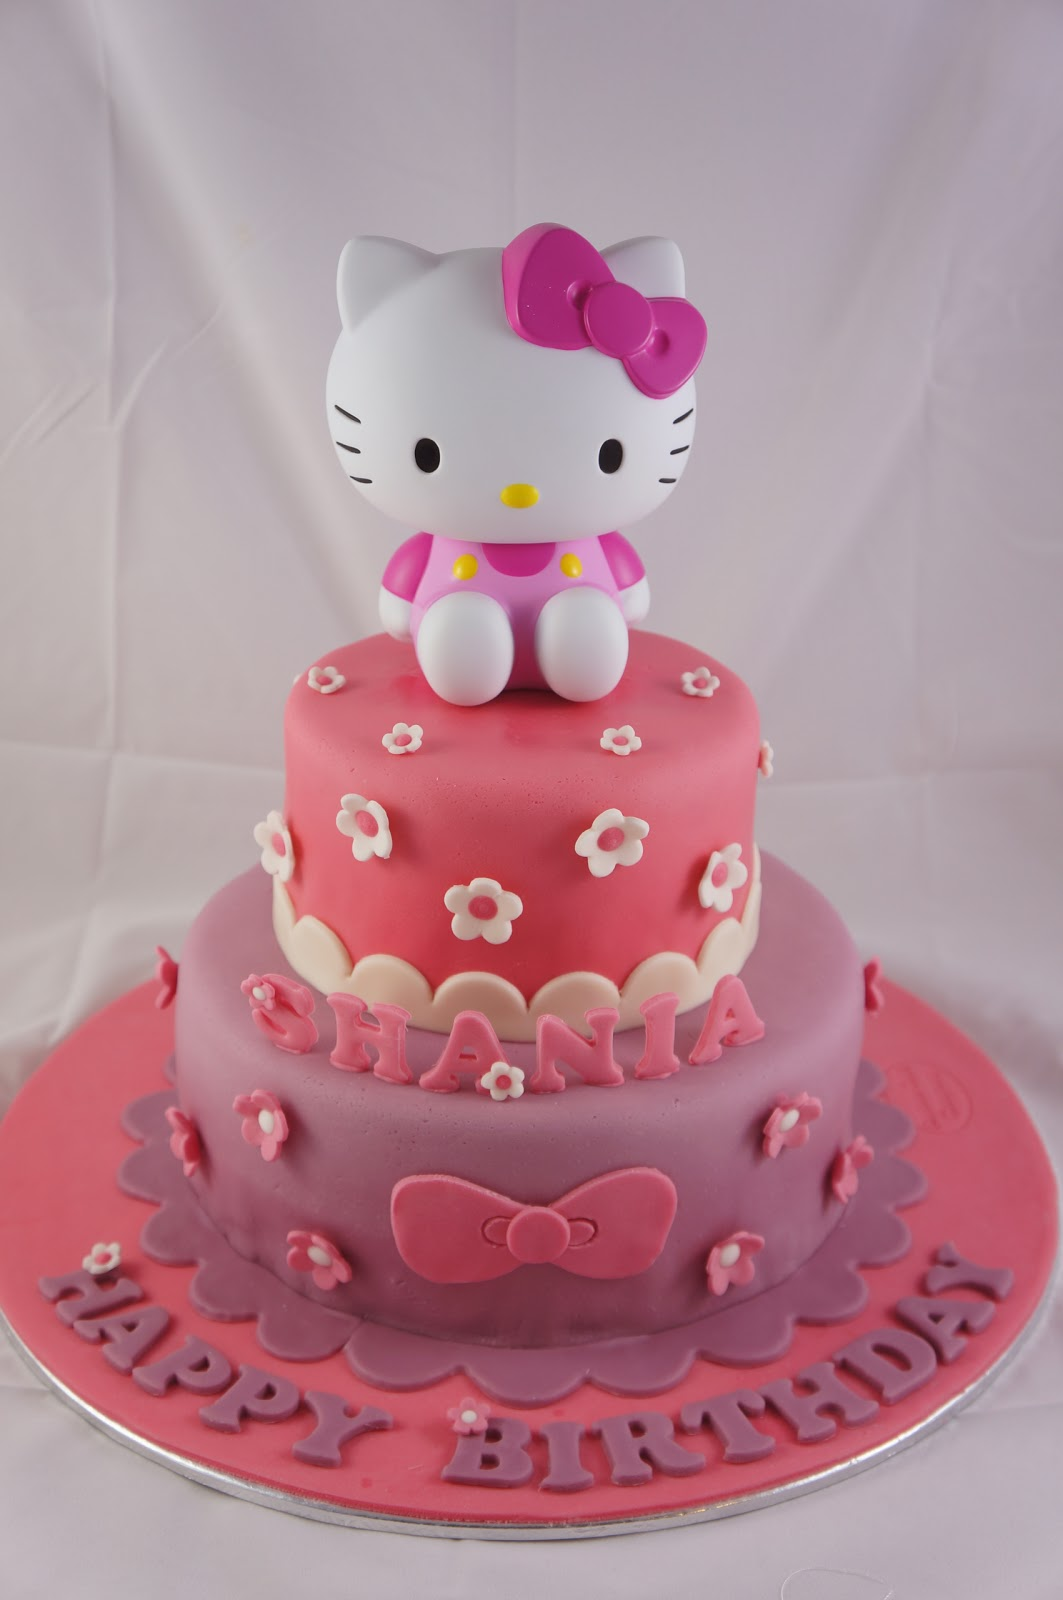 Birthday Cake Pictures Hello Kitty : Joyous Cake Company: Hello Kitty pink cake